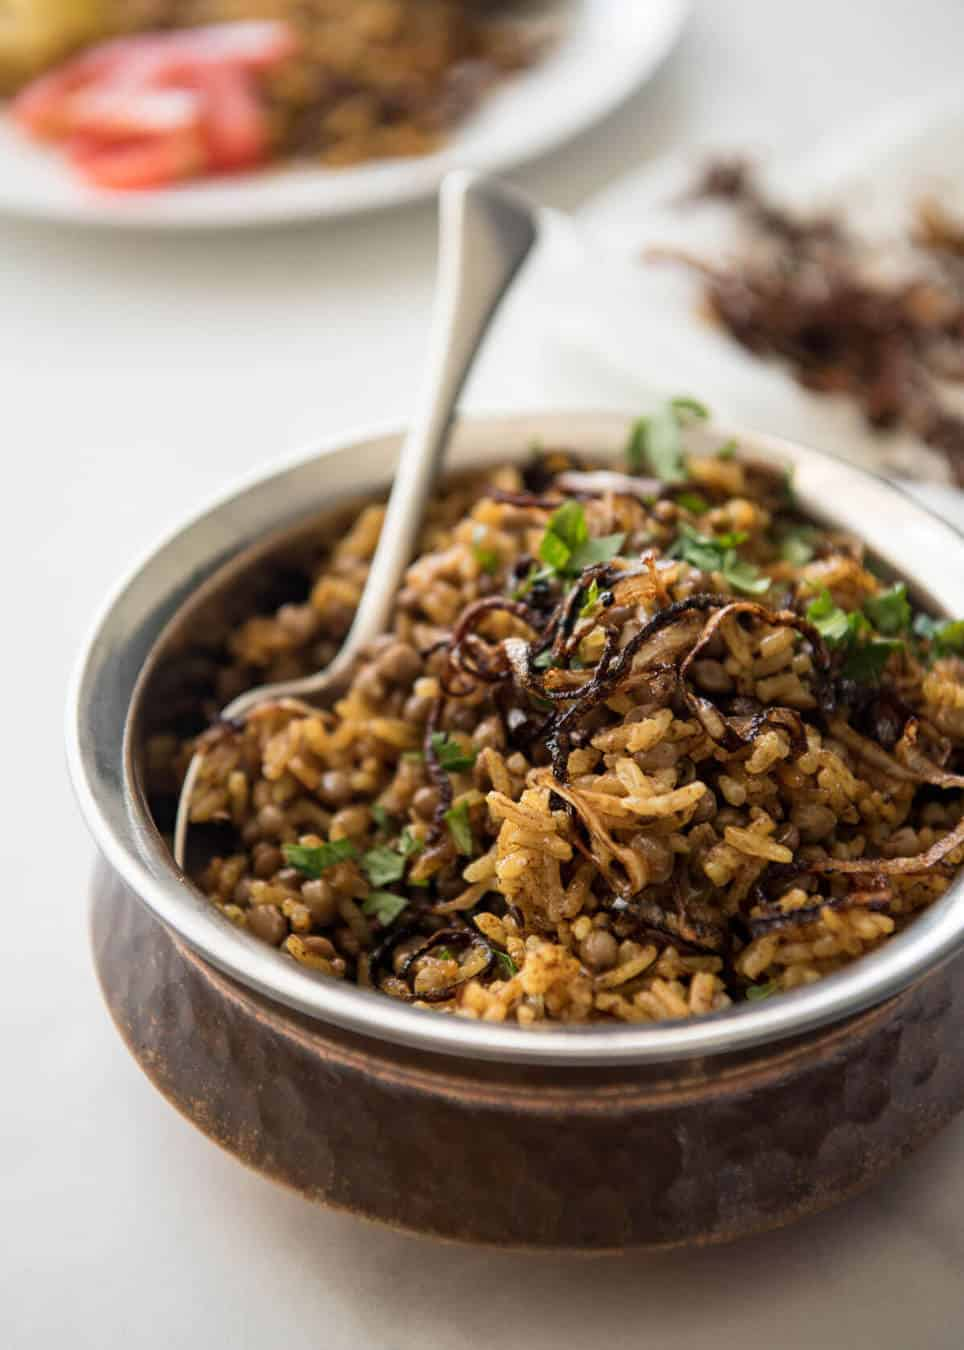 Middle eastern spiced lentil and rice mejadra recipetin eats mejadra a aromatic middle eastern rice and lentil pilaf a recipe by yotam ottolenghi forumfinder Choice Image